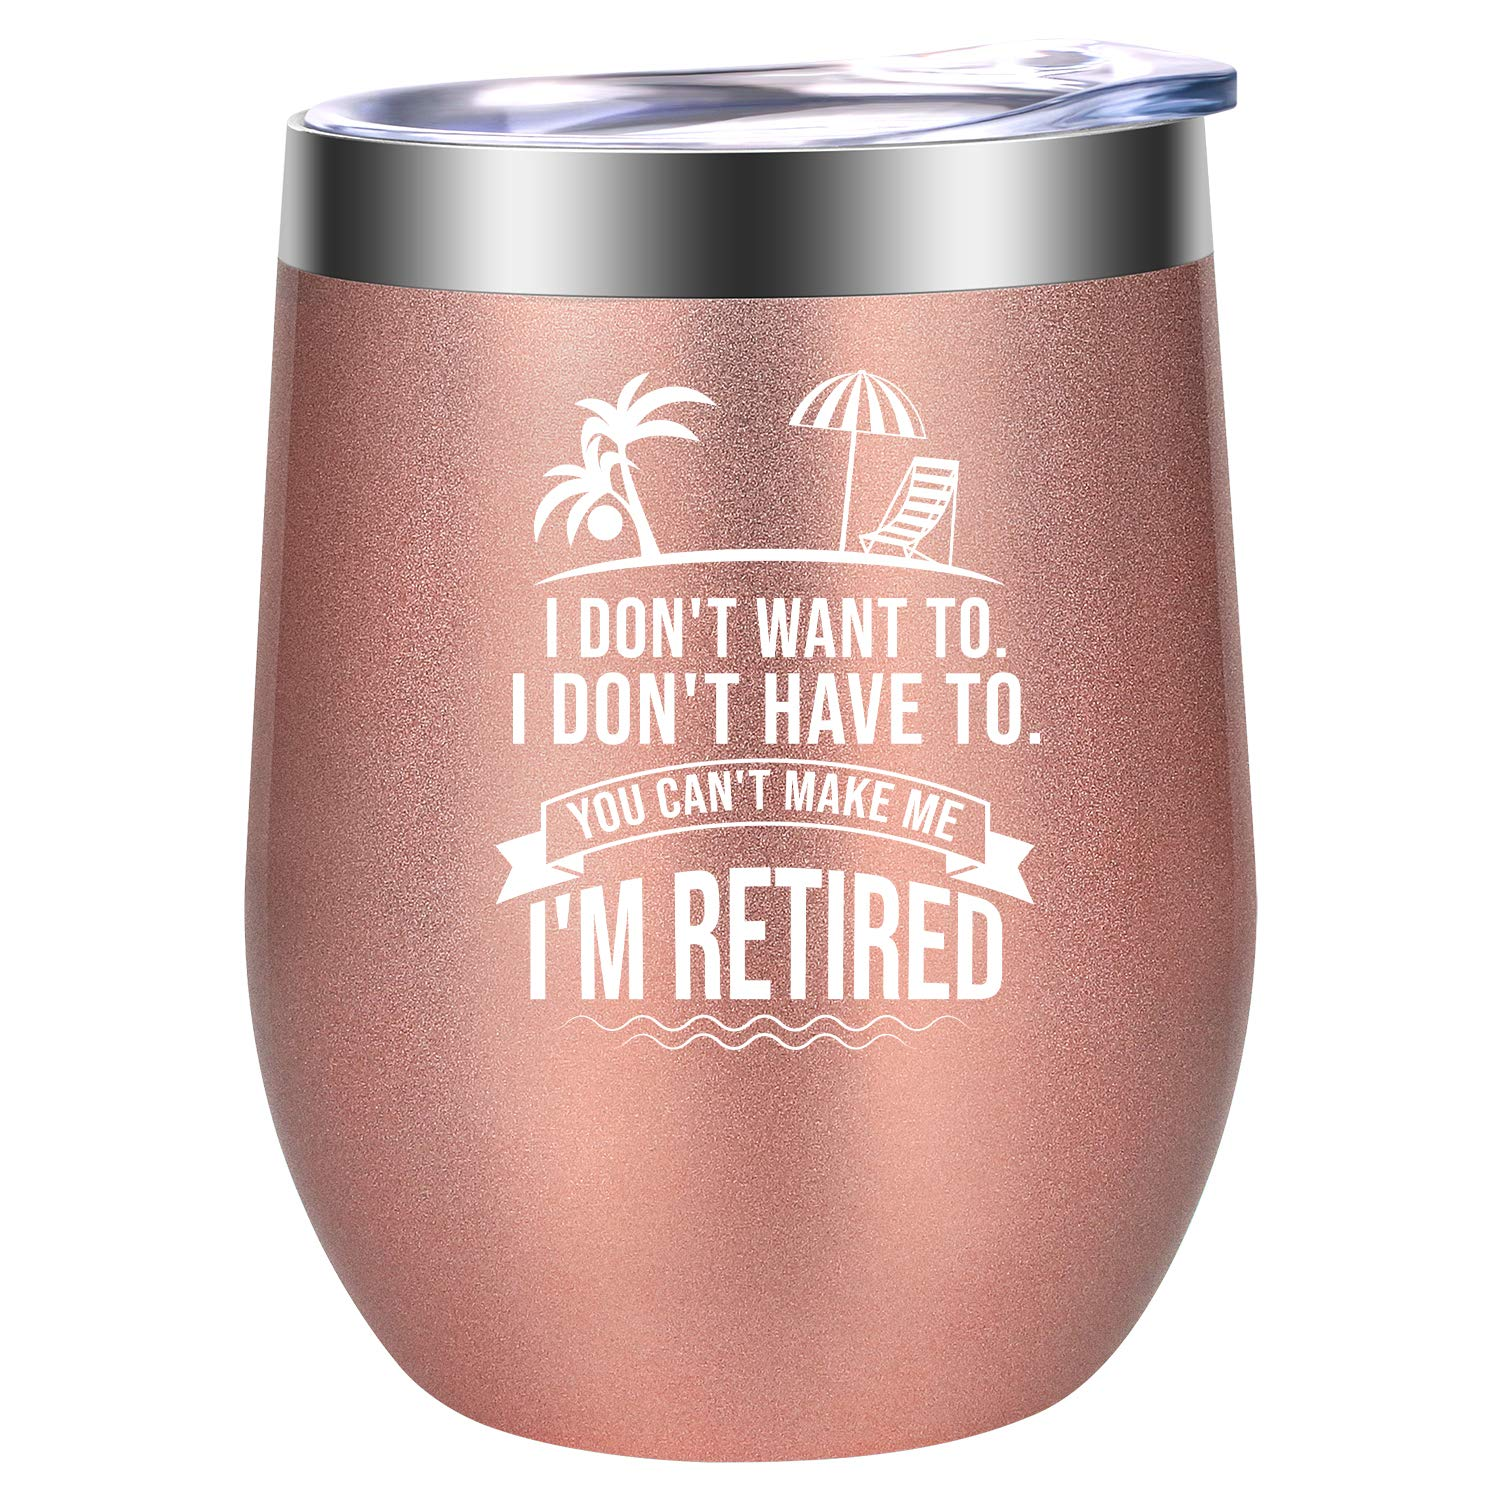 I Don't Want To I Don't Have To You Can't Make Me I'm Retired - Happy Retirement Gifts for Women - Funny Retired Goodbye Gift for Retiring Teachers, Best Friends, Coworkers - LEADO 12 oz Wine Tumbler by LEADO (Image #1)